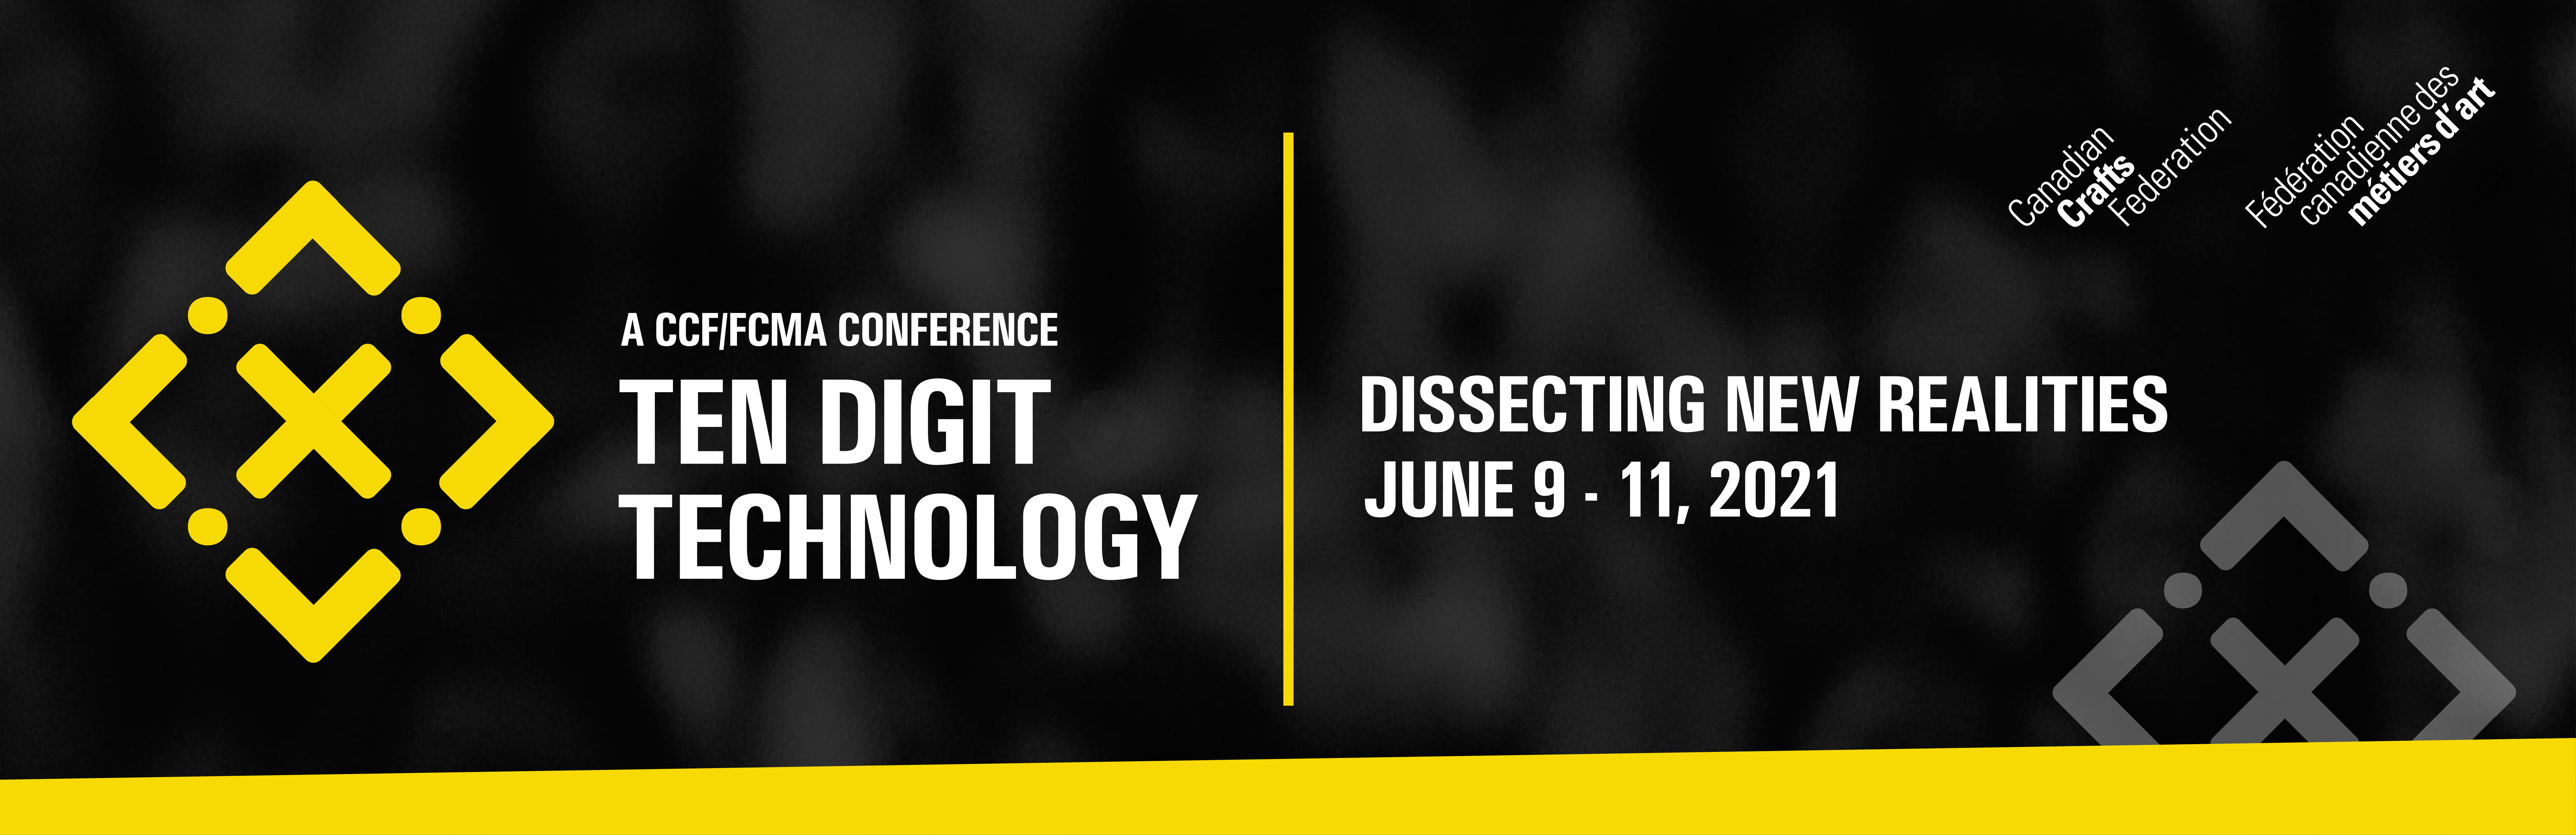 Dissecting New Realities Conference